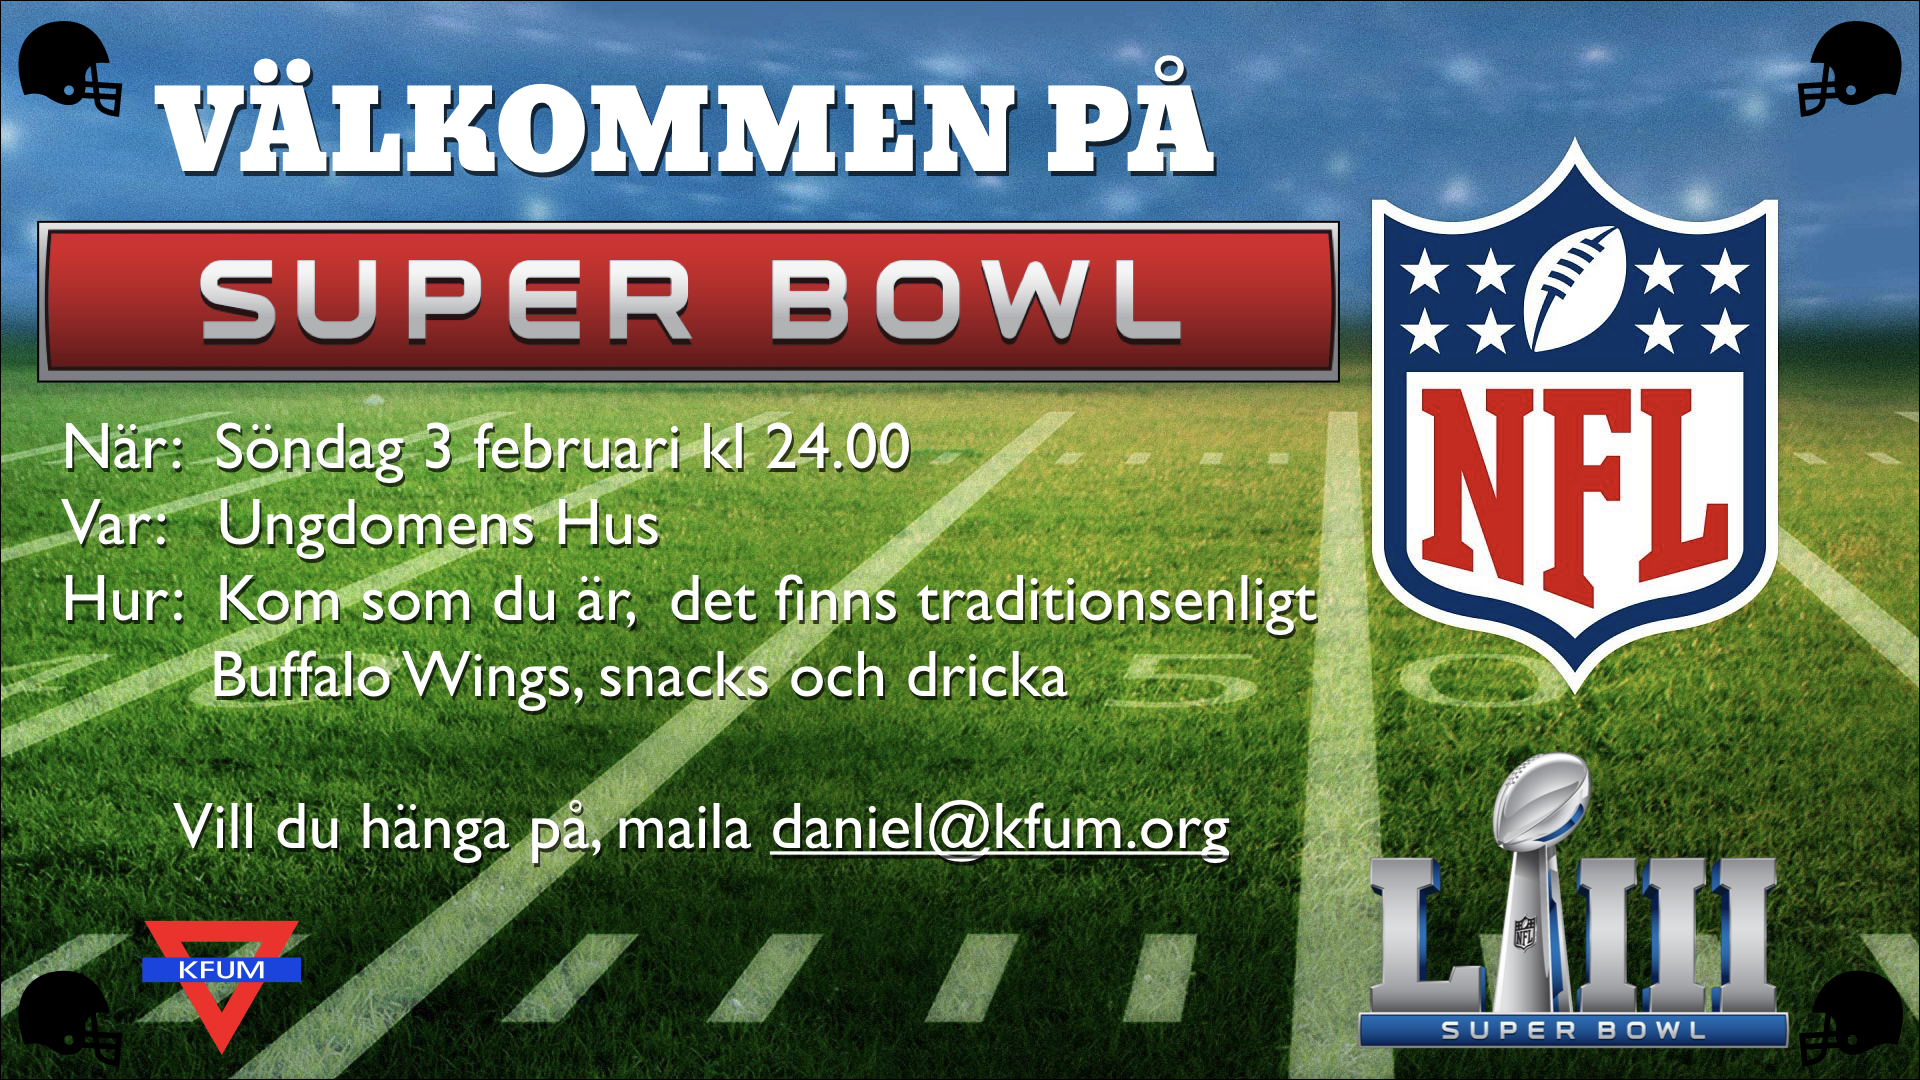 Super Bowl på KFUM!